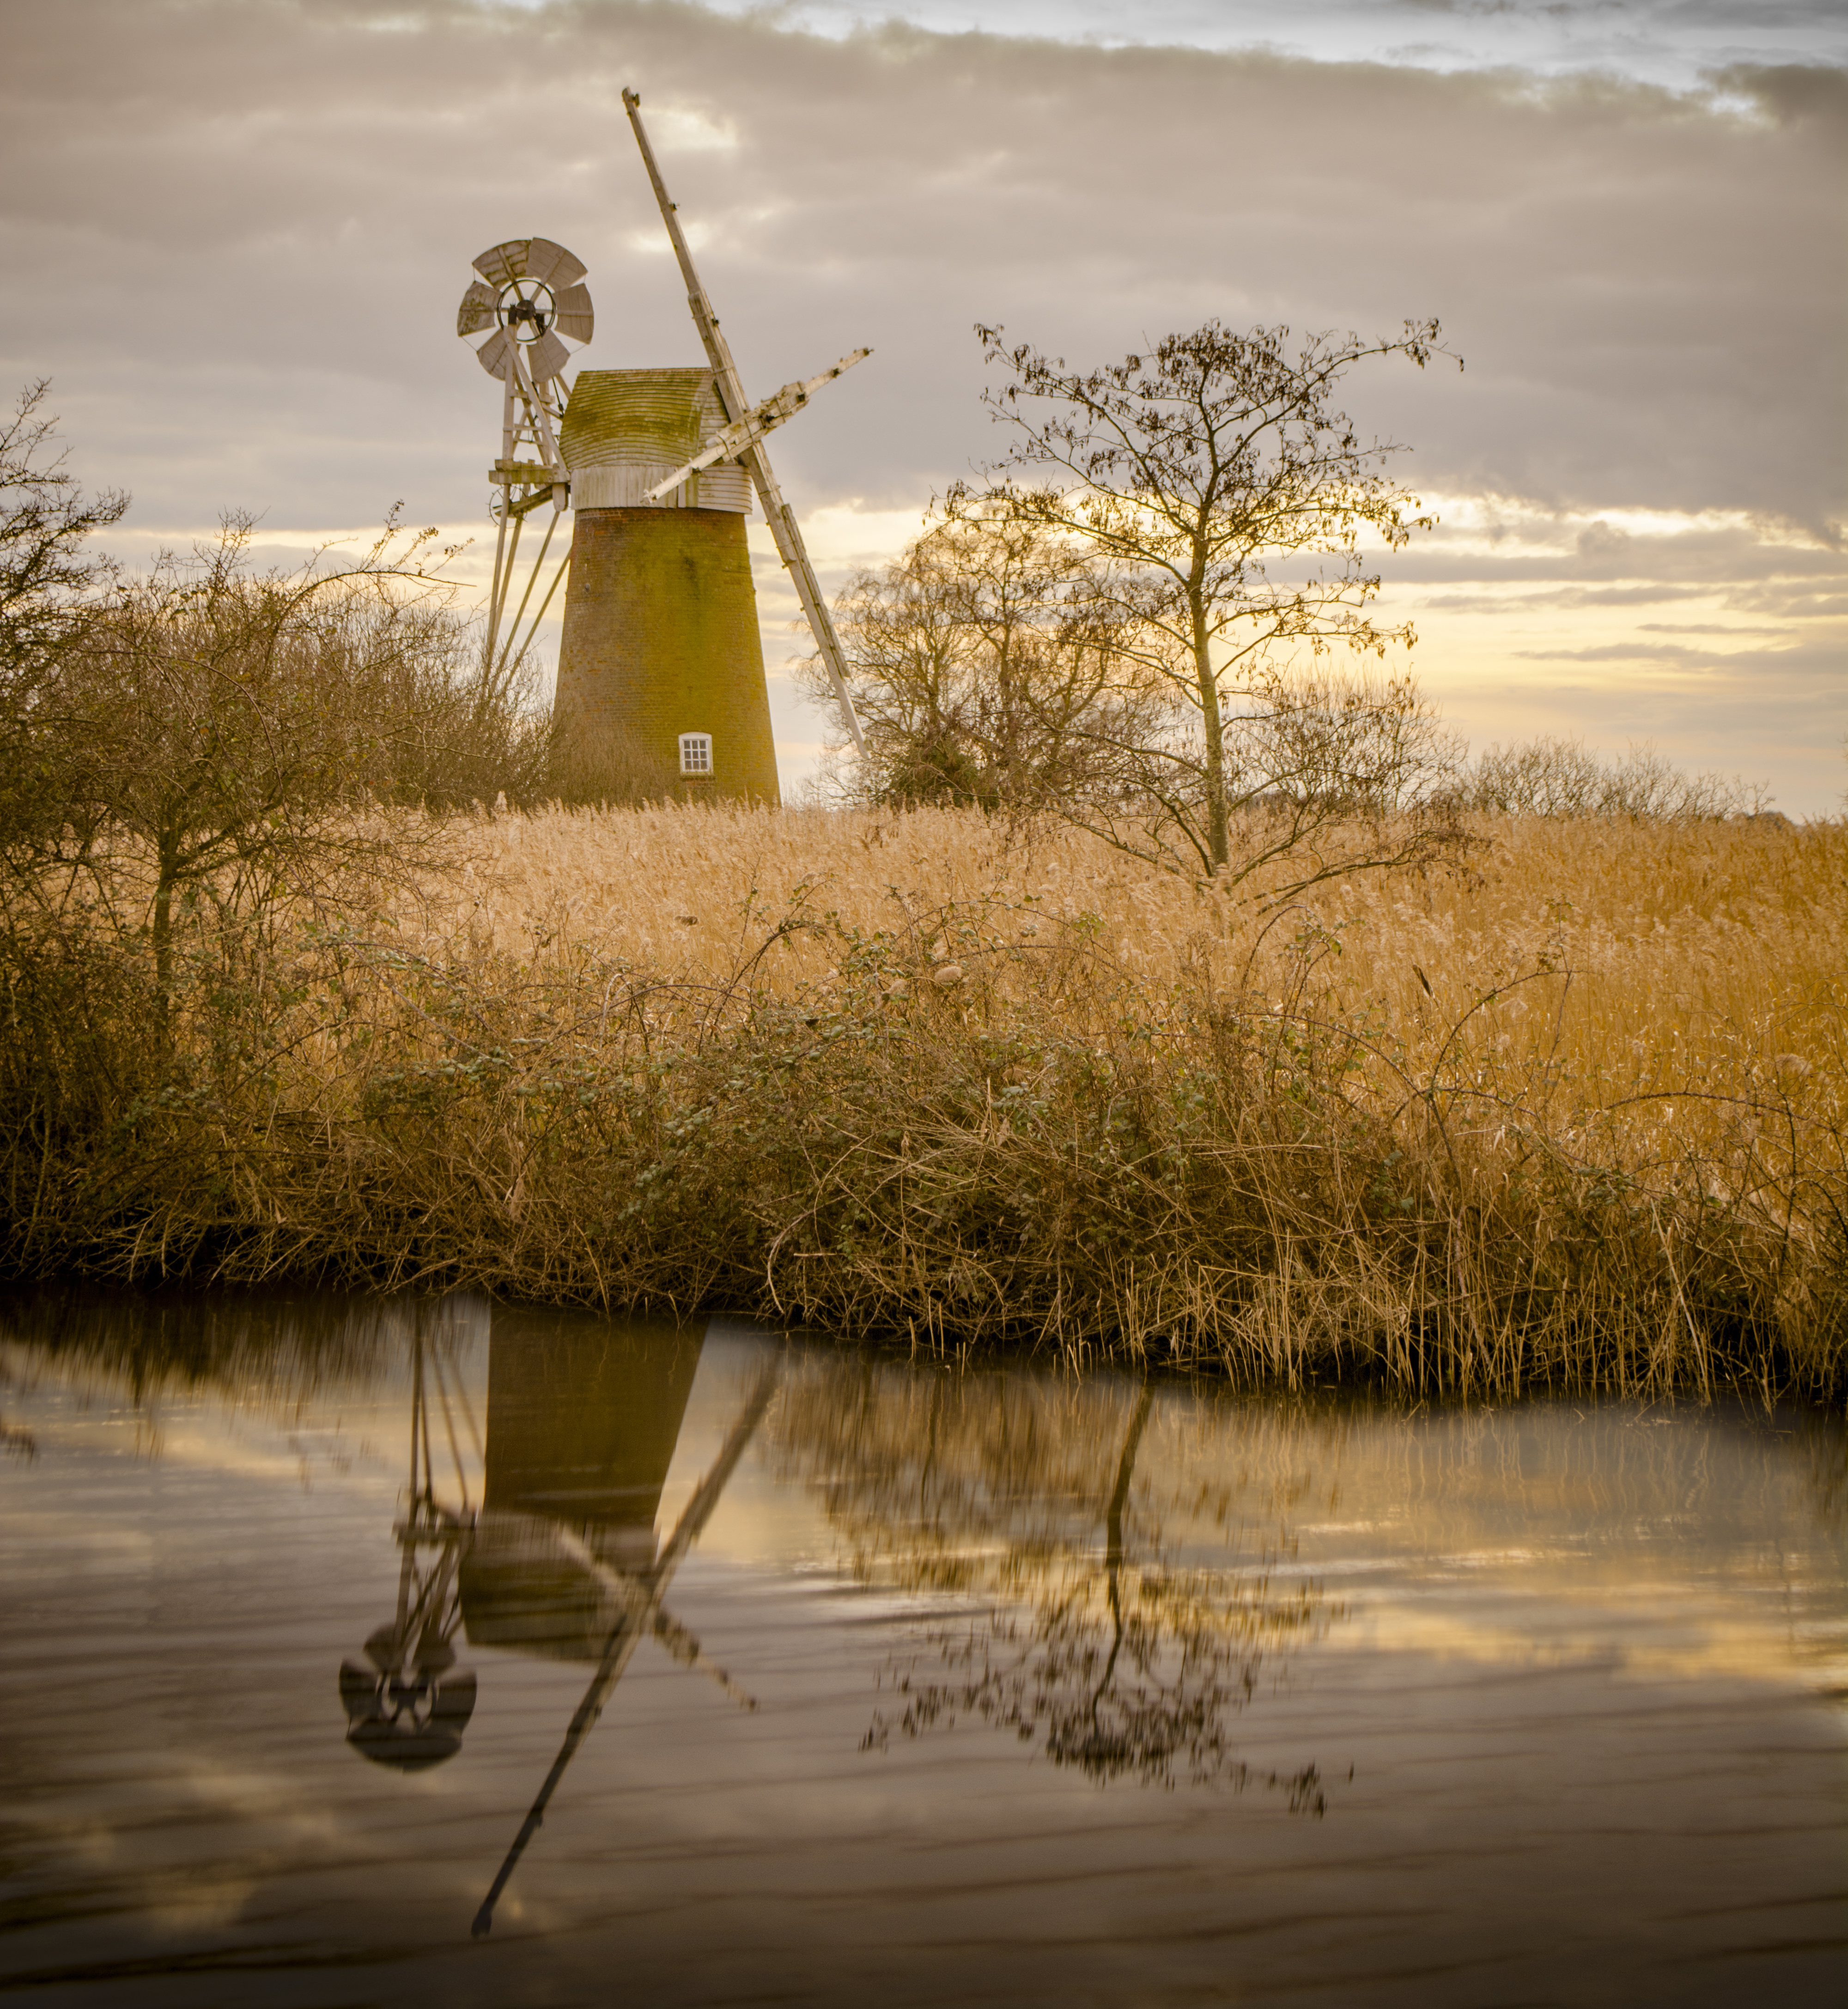 Windmill relected in the river.jpg